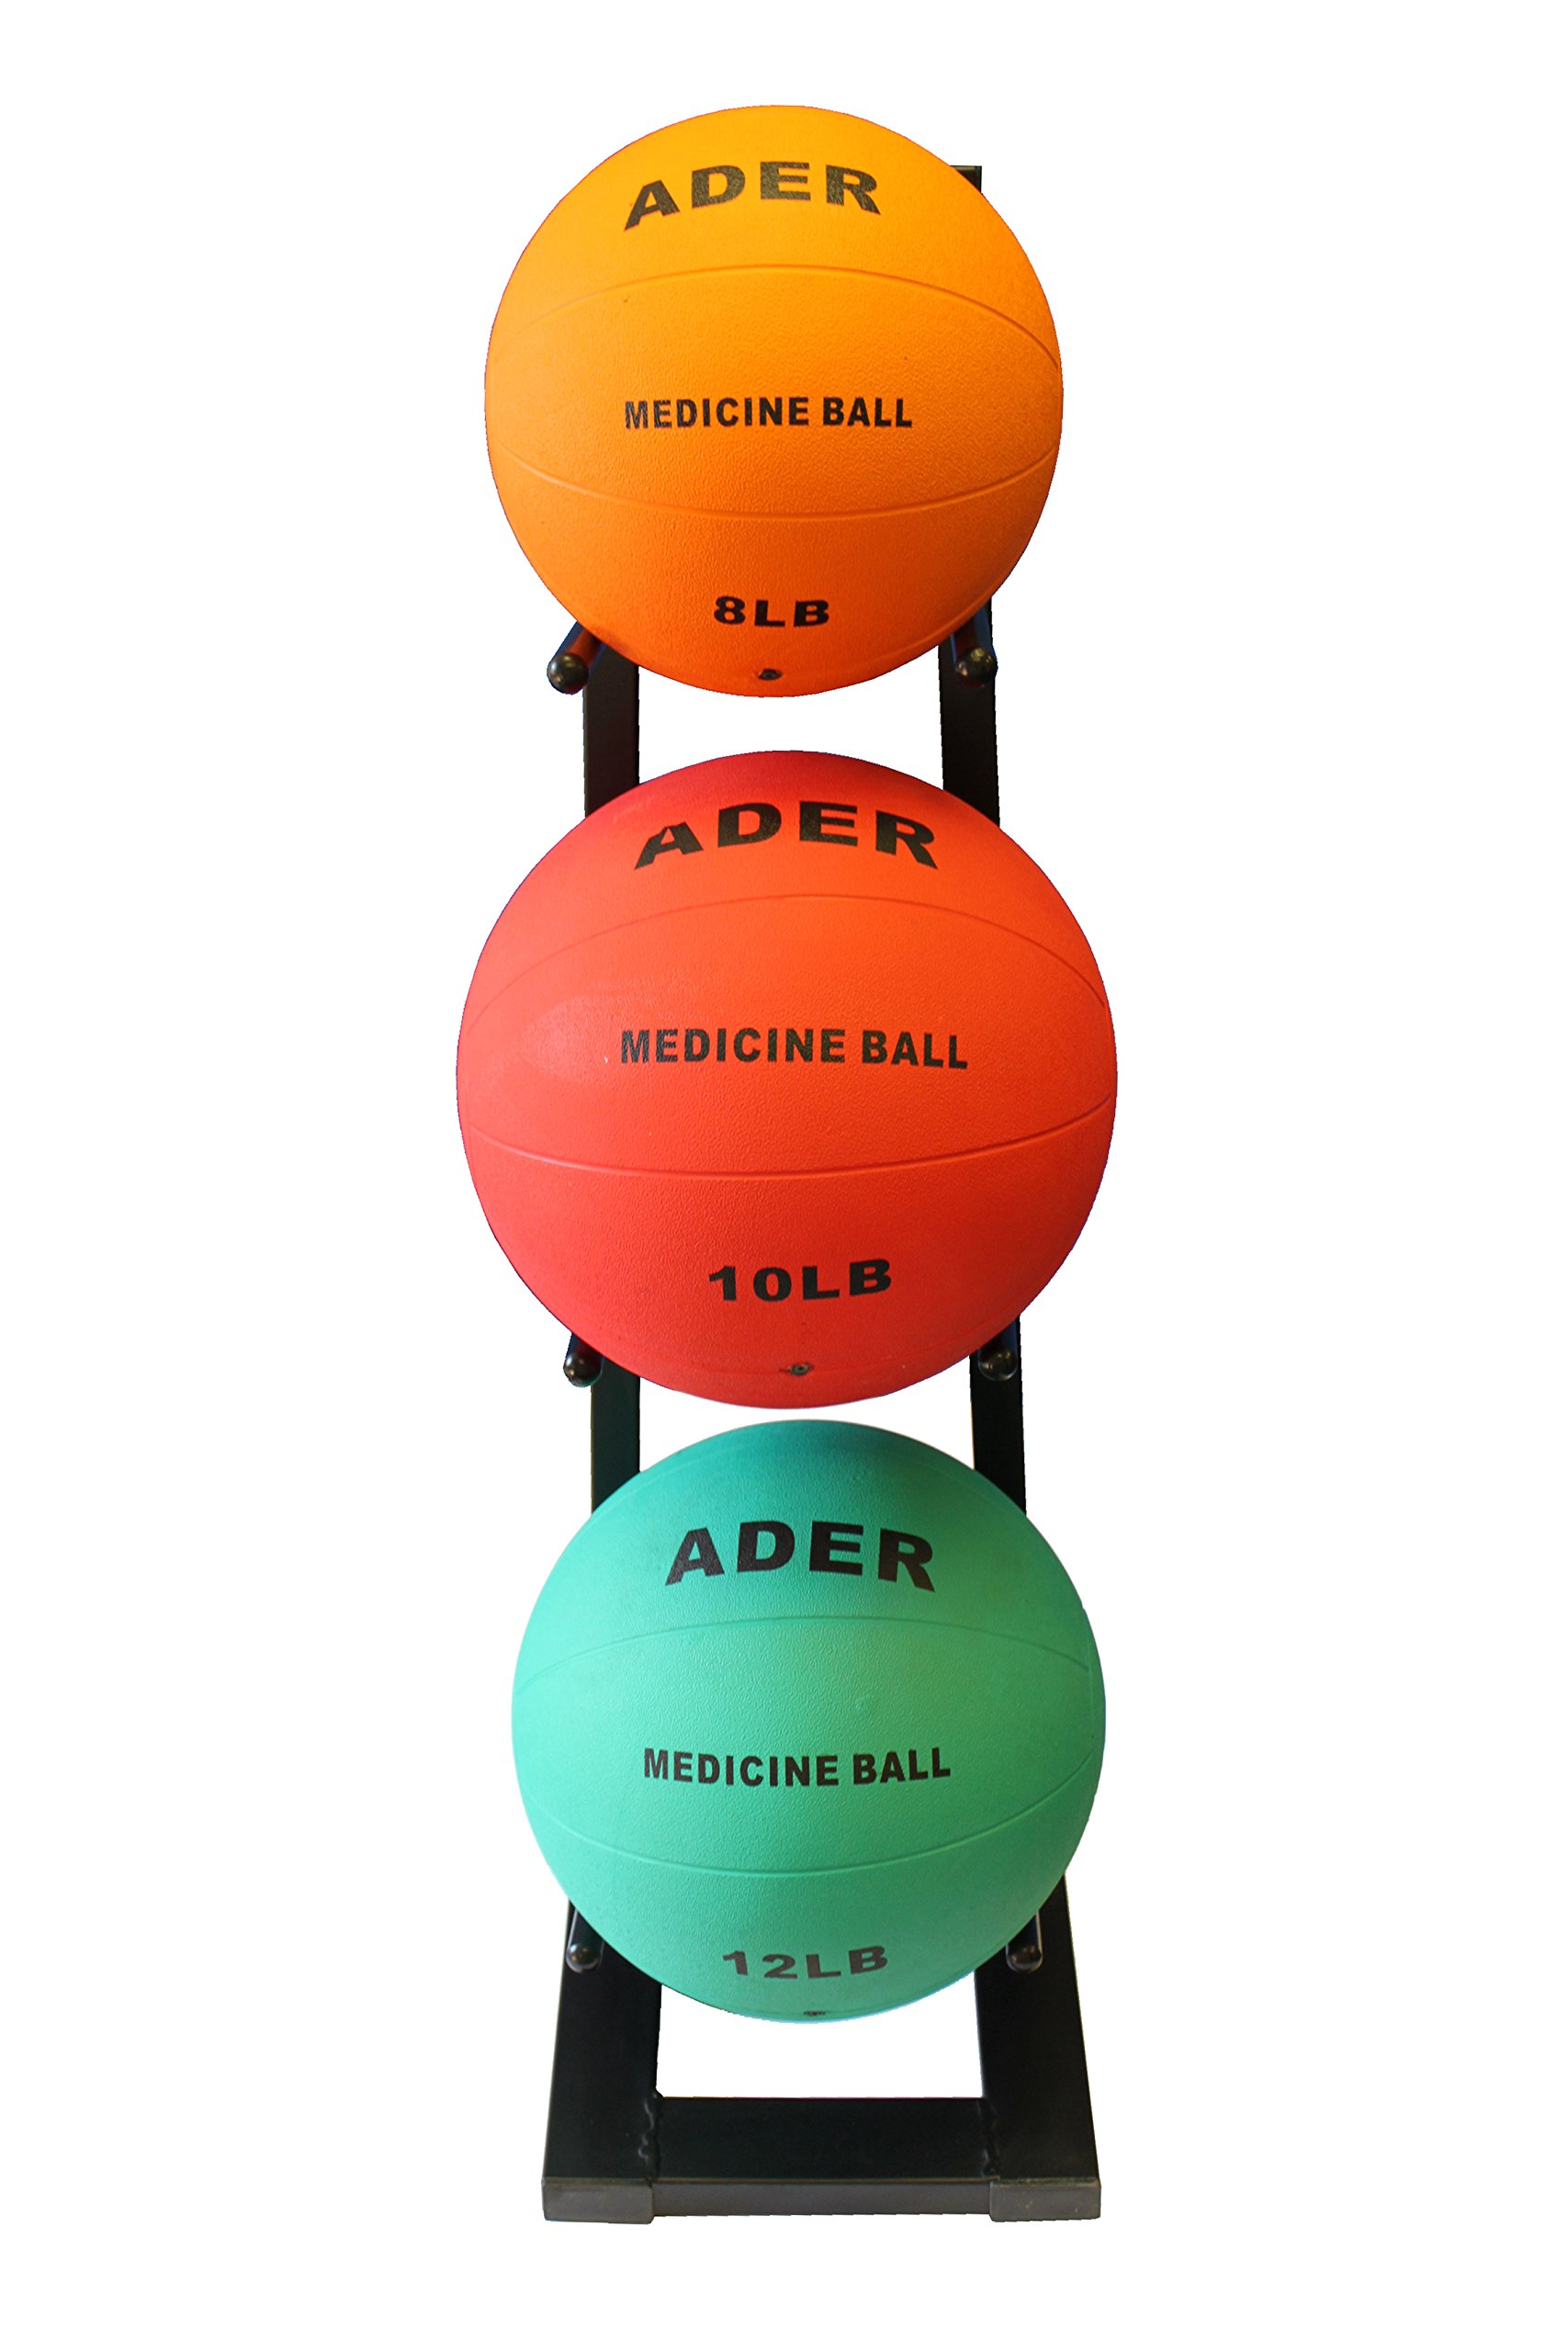 Ader Medicine Ball Set w/Rack (Rack + 8-12-25 LB Med Balls) by Ader Sporting Goods (Image #3)